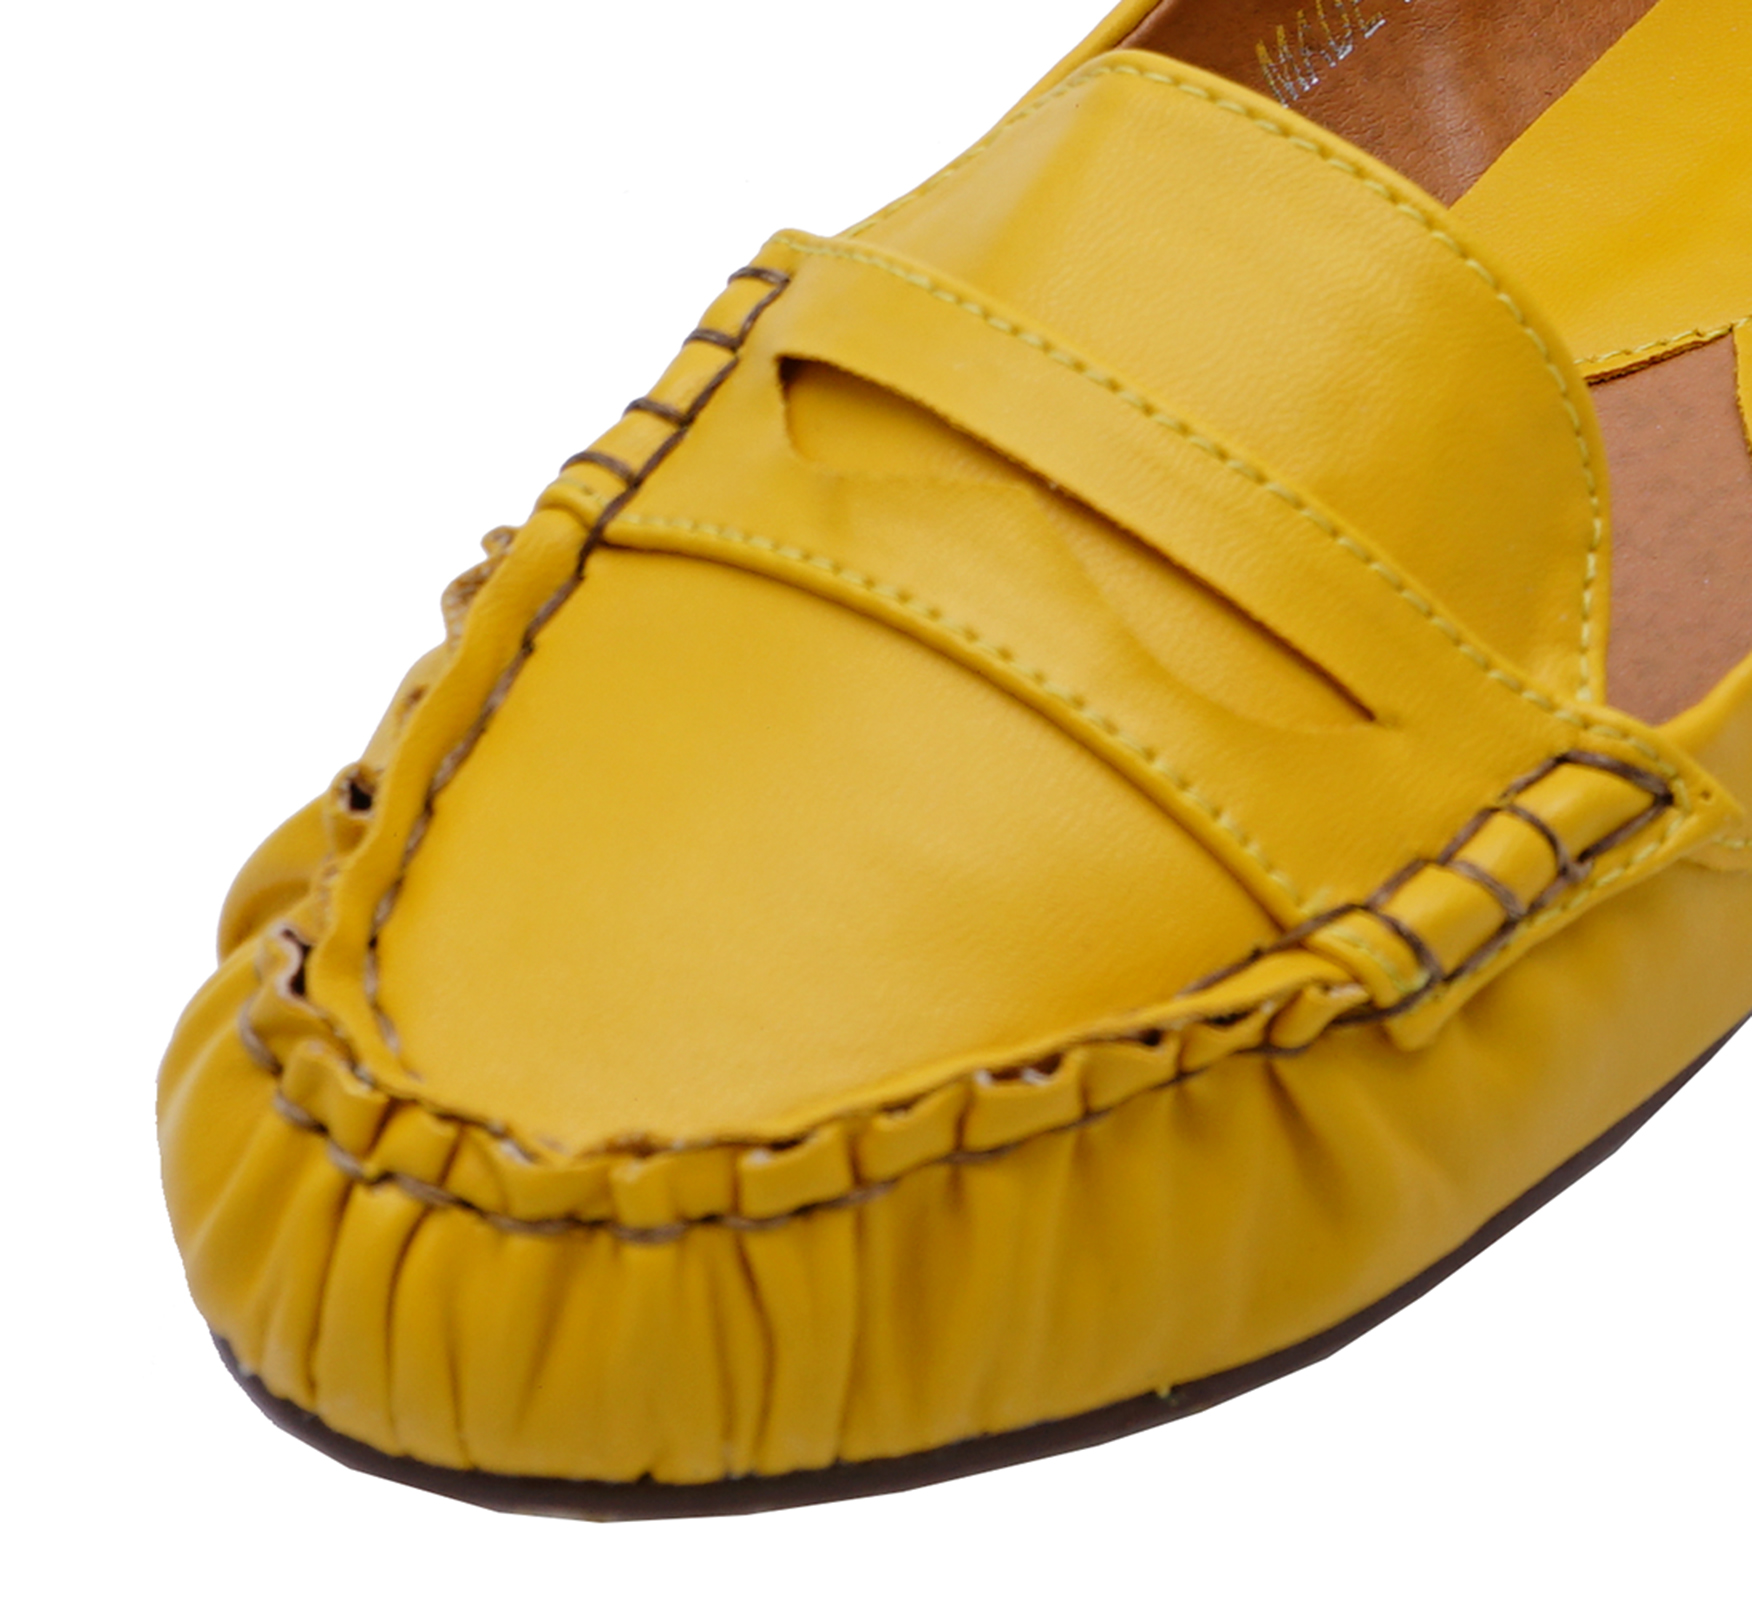 ec0500de5 Sentinel LADIES YELLOW FLAT SLIP-ON LOAFERS SMART COMFY WORK MOCCASIN SHOES  PUMPS 3-8